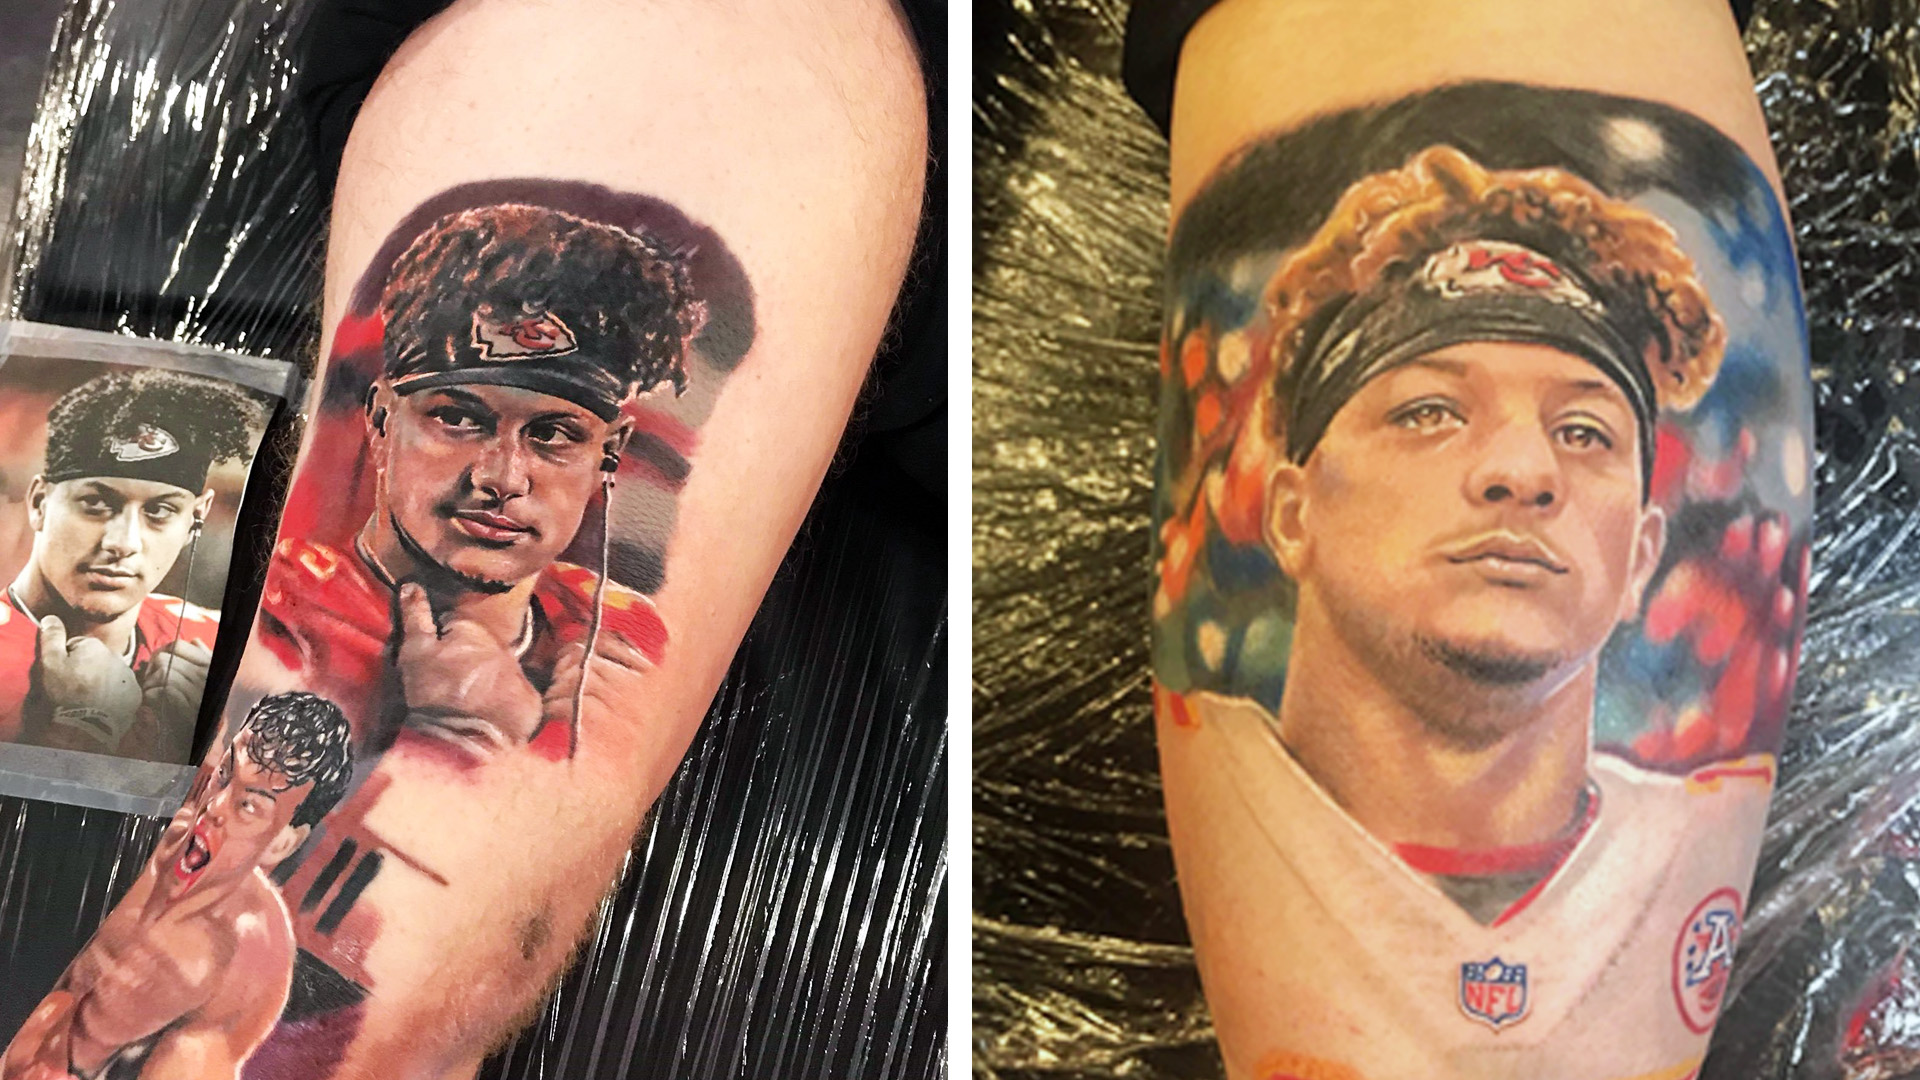 Tattoos Of Kansas City Chiefs Patrick Mahomes Surging Nbc Sports